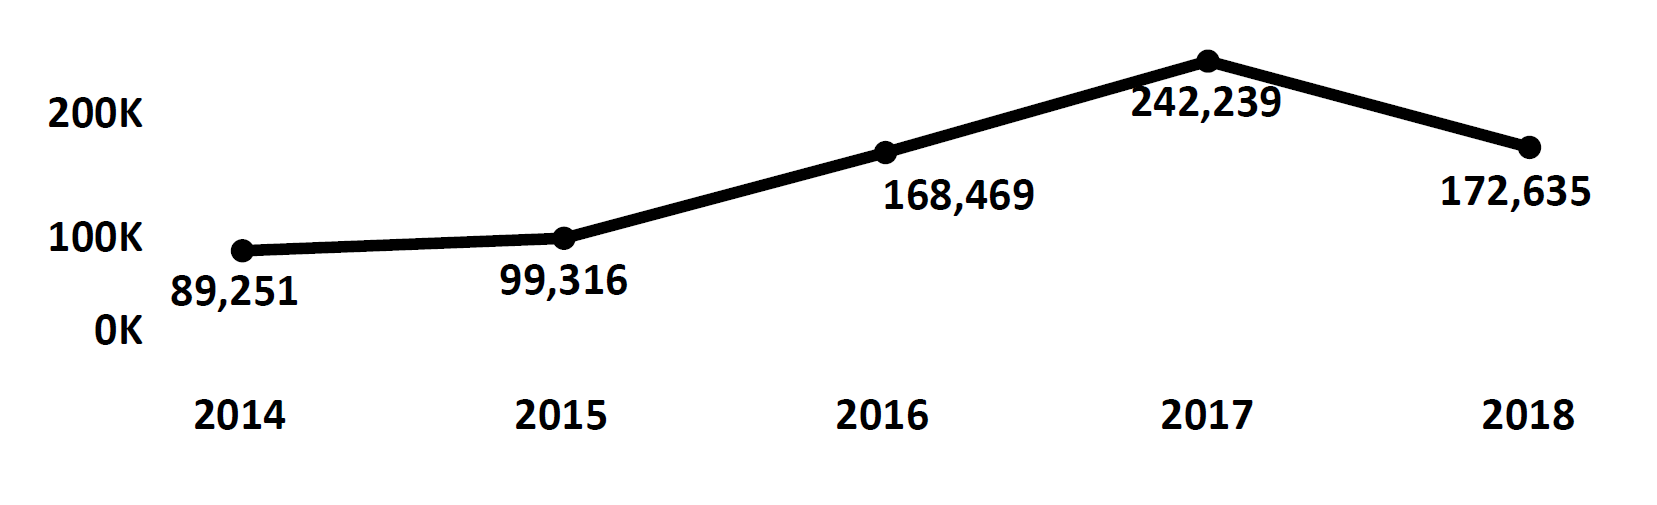 Graph of Do Not Call complaints recorded in Georgia from fiscal year 2014 to fiscal year 2018. In 2014 there were 89,251 complaints filed, which increased each year to peak at 242,239 in 2017. In 2018 there were 172,635 complaints filed, fewer than 2017.